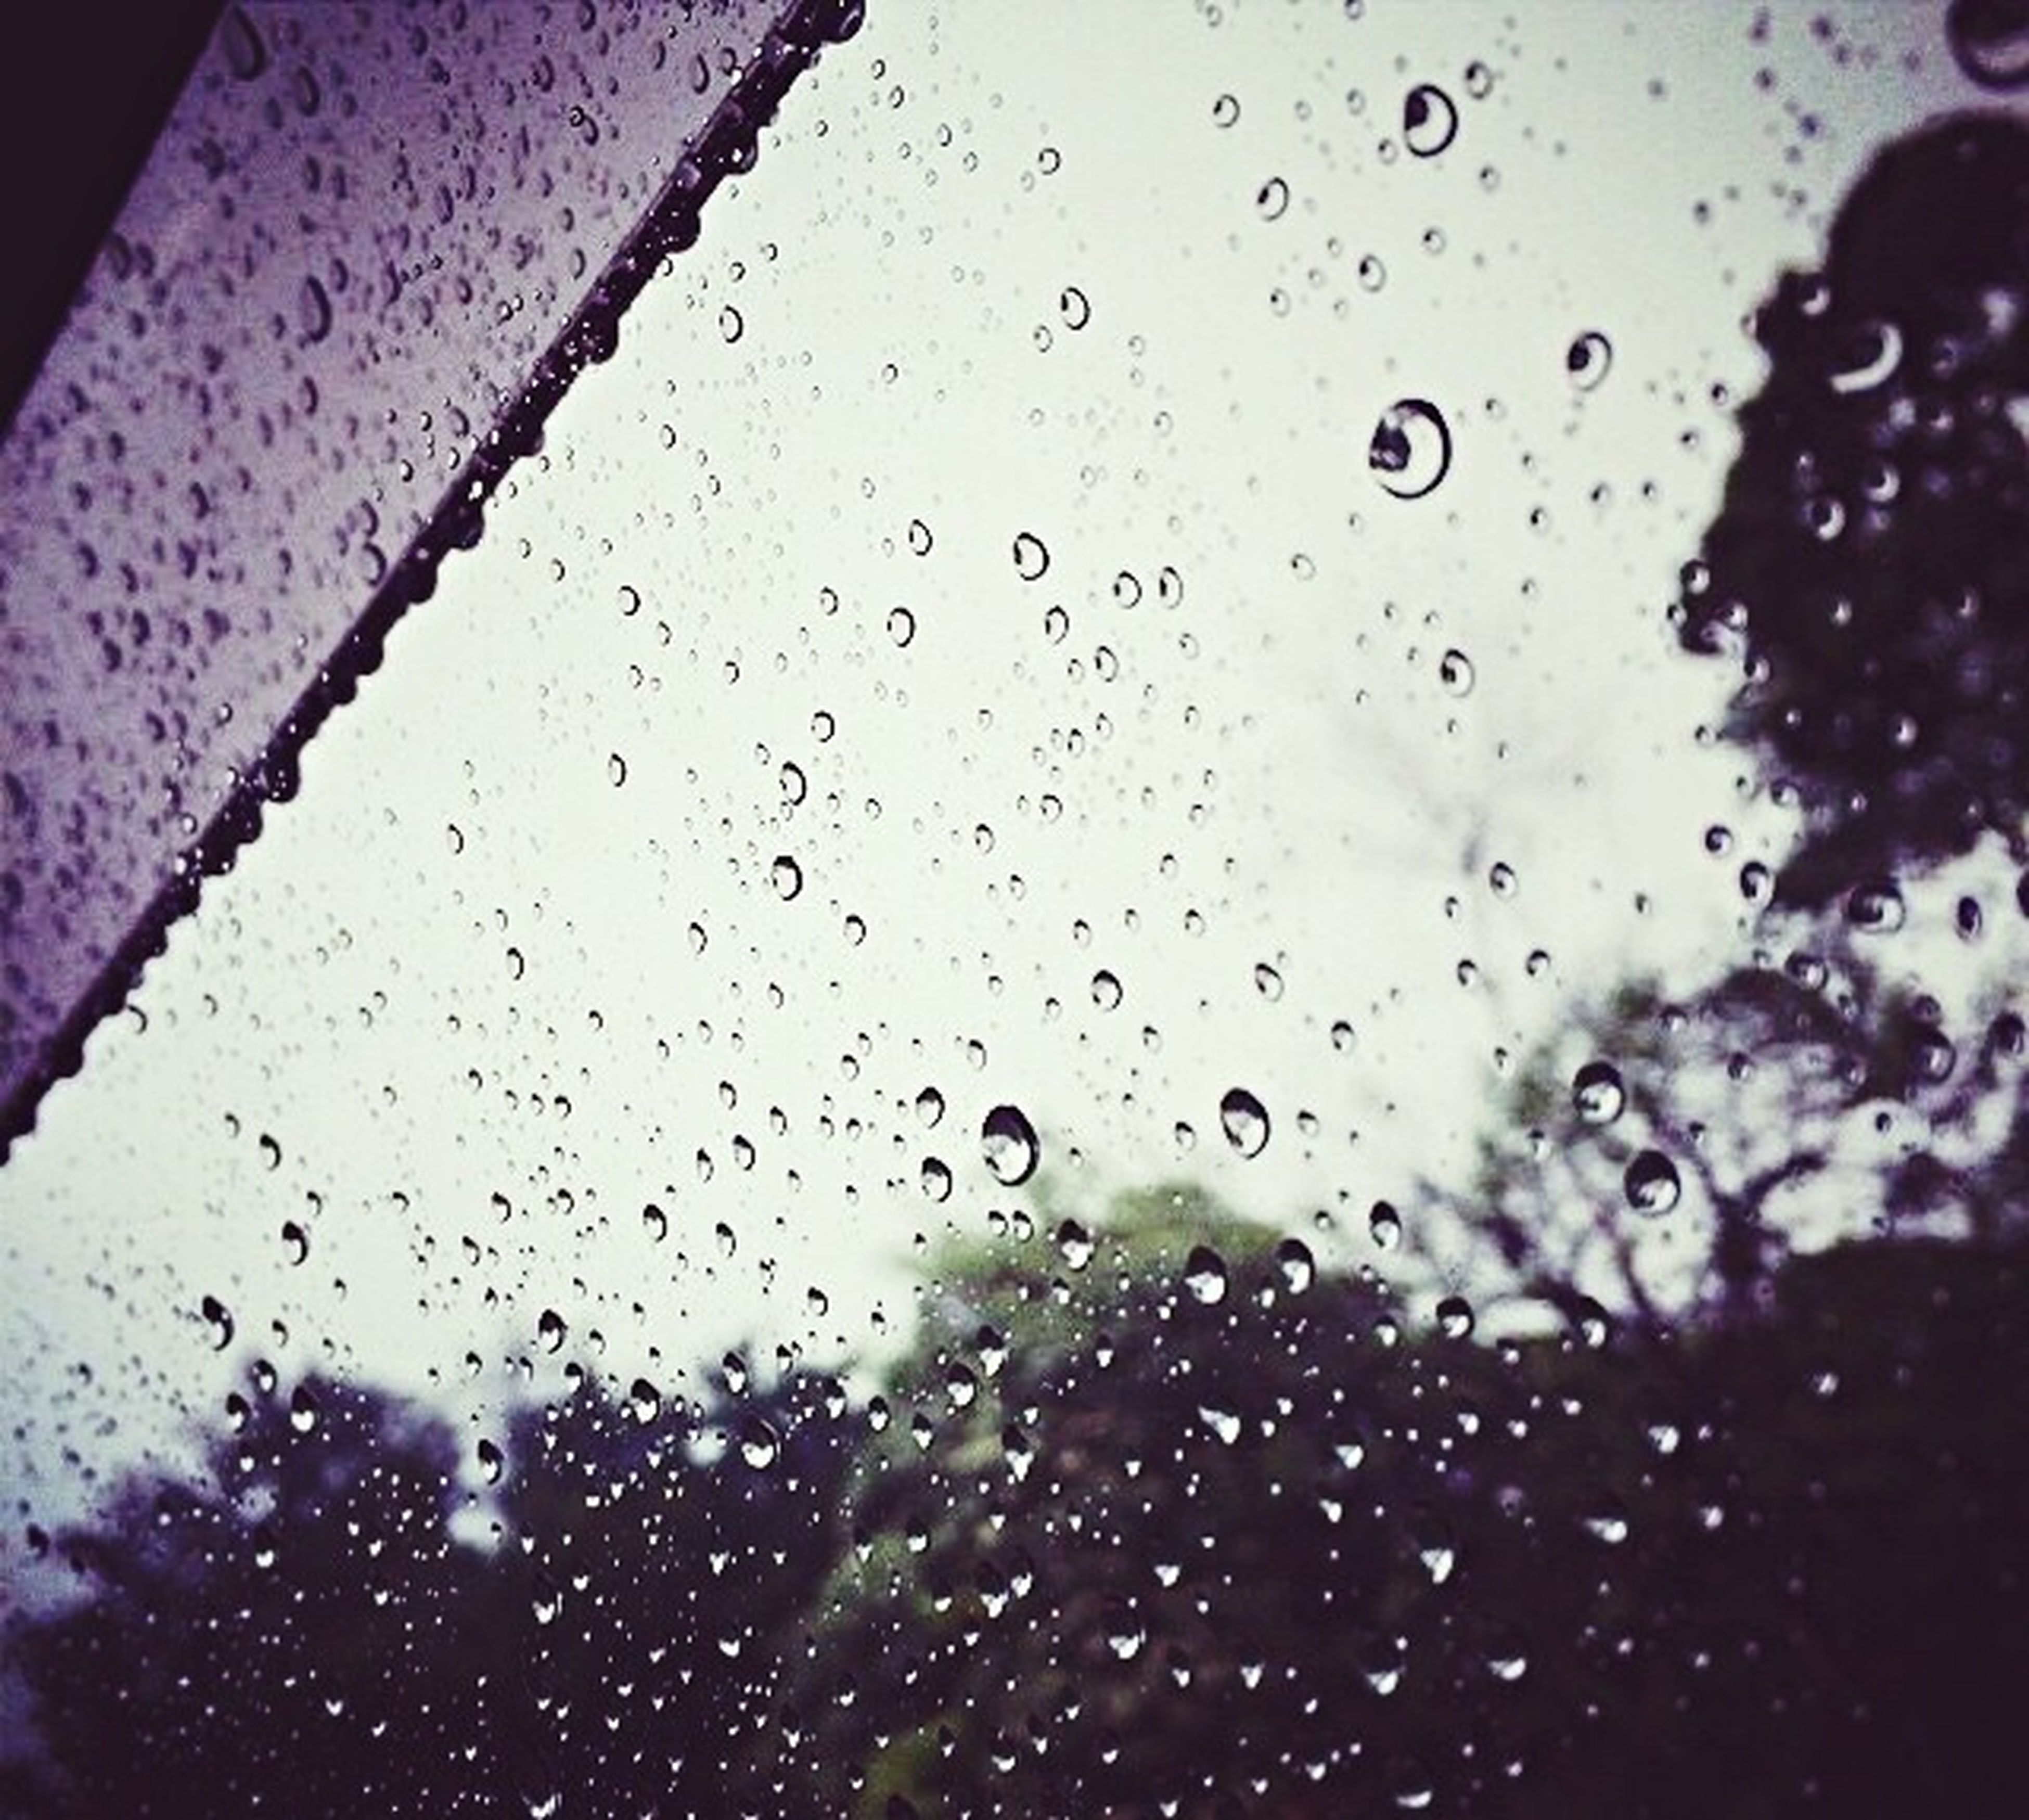 drop, wet, rain, water, window, raindrop, weather, indoors, transparent, sky, glass - material, season, focus on foreground, silhouette, droplet, monsoon, glass, dusk, close-up, backgrounds